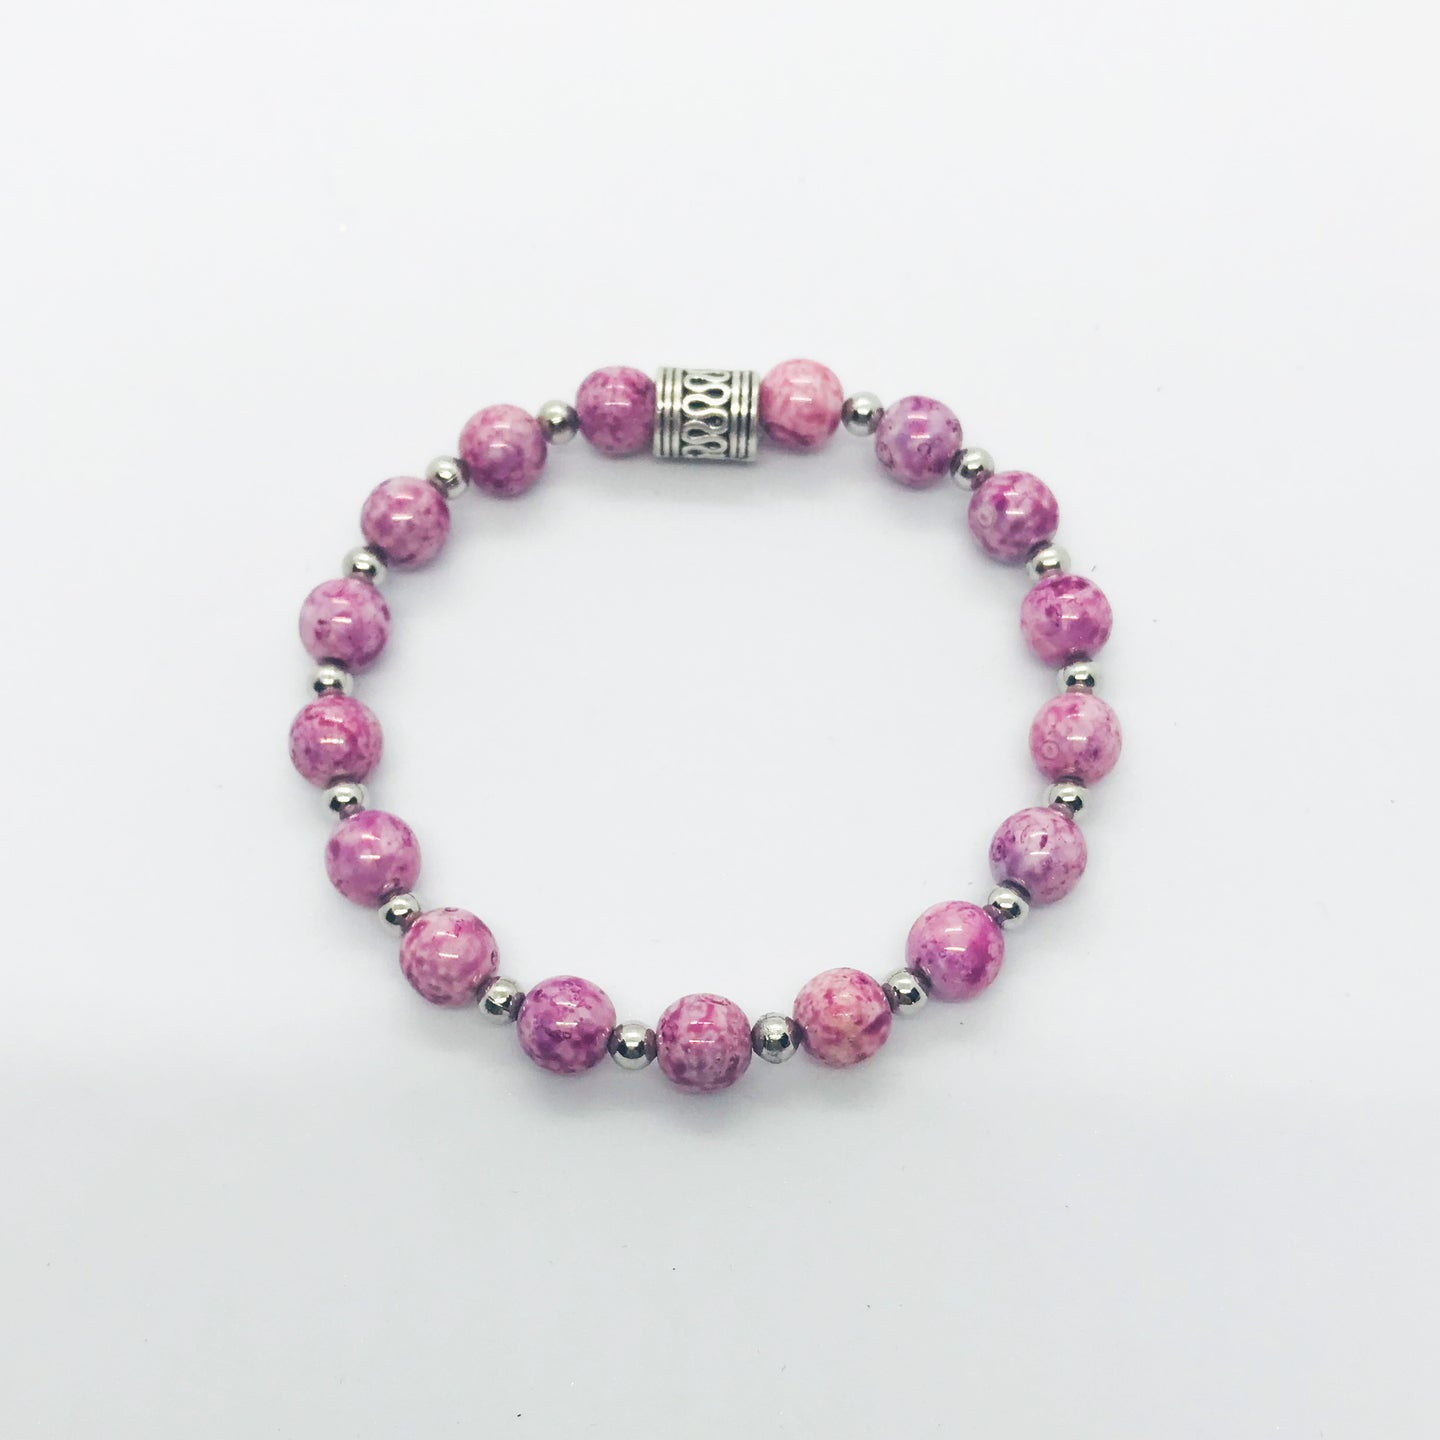 Glass Bead Stretchy Bracelet - B701